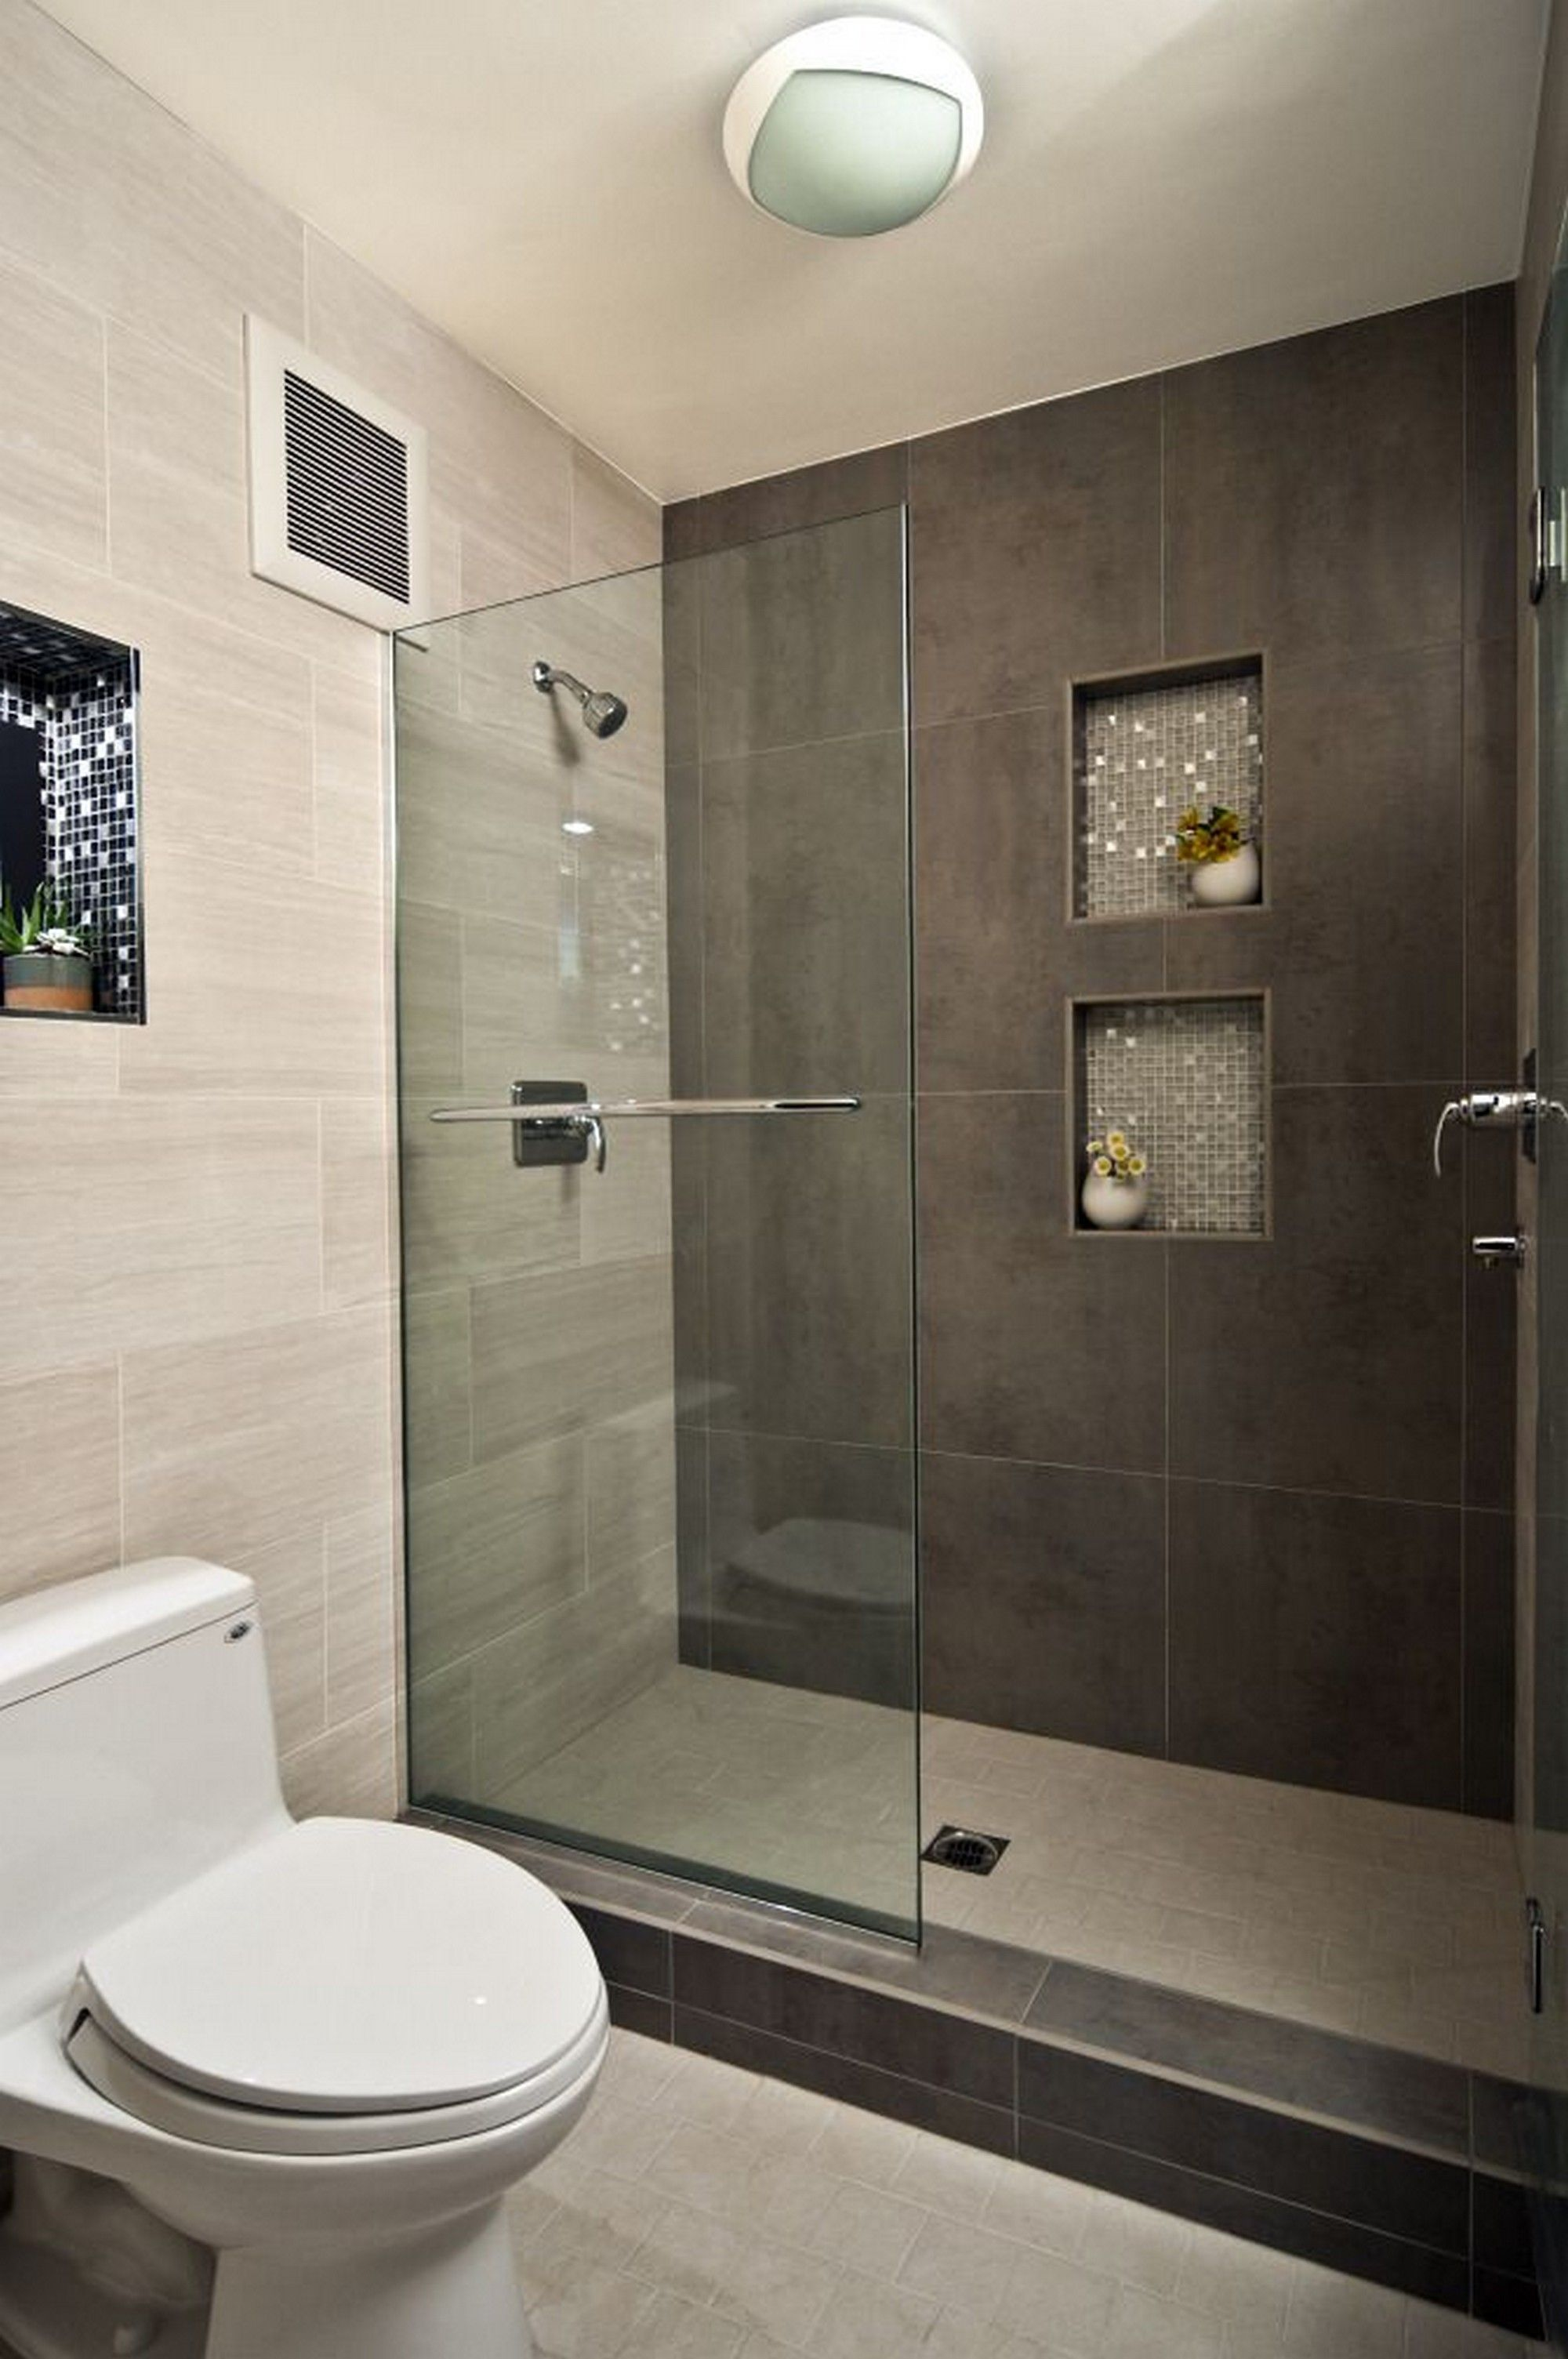 Modern bathroom design ideas with walk in shower small bathroom bathroom designs and small - Small bathroom design ...